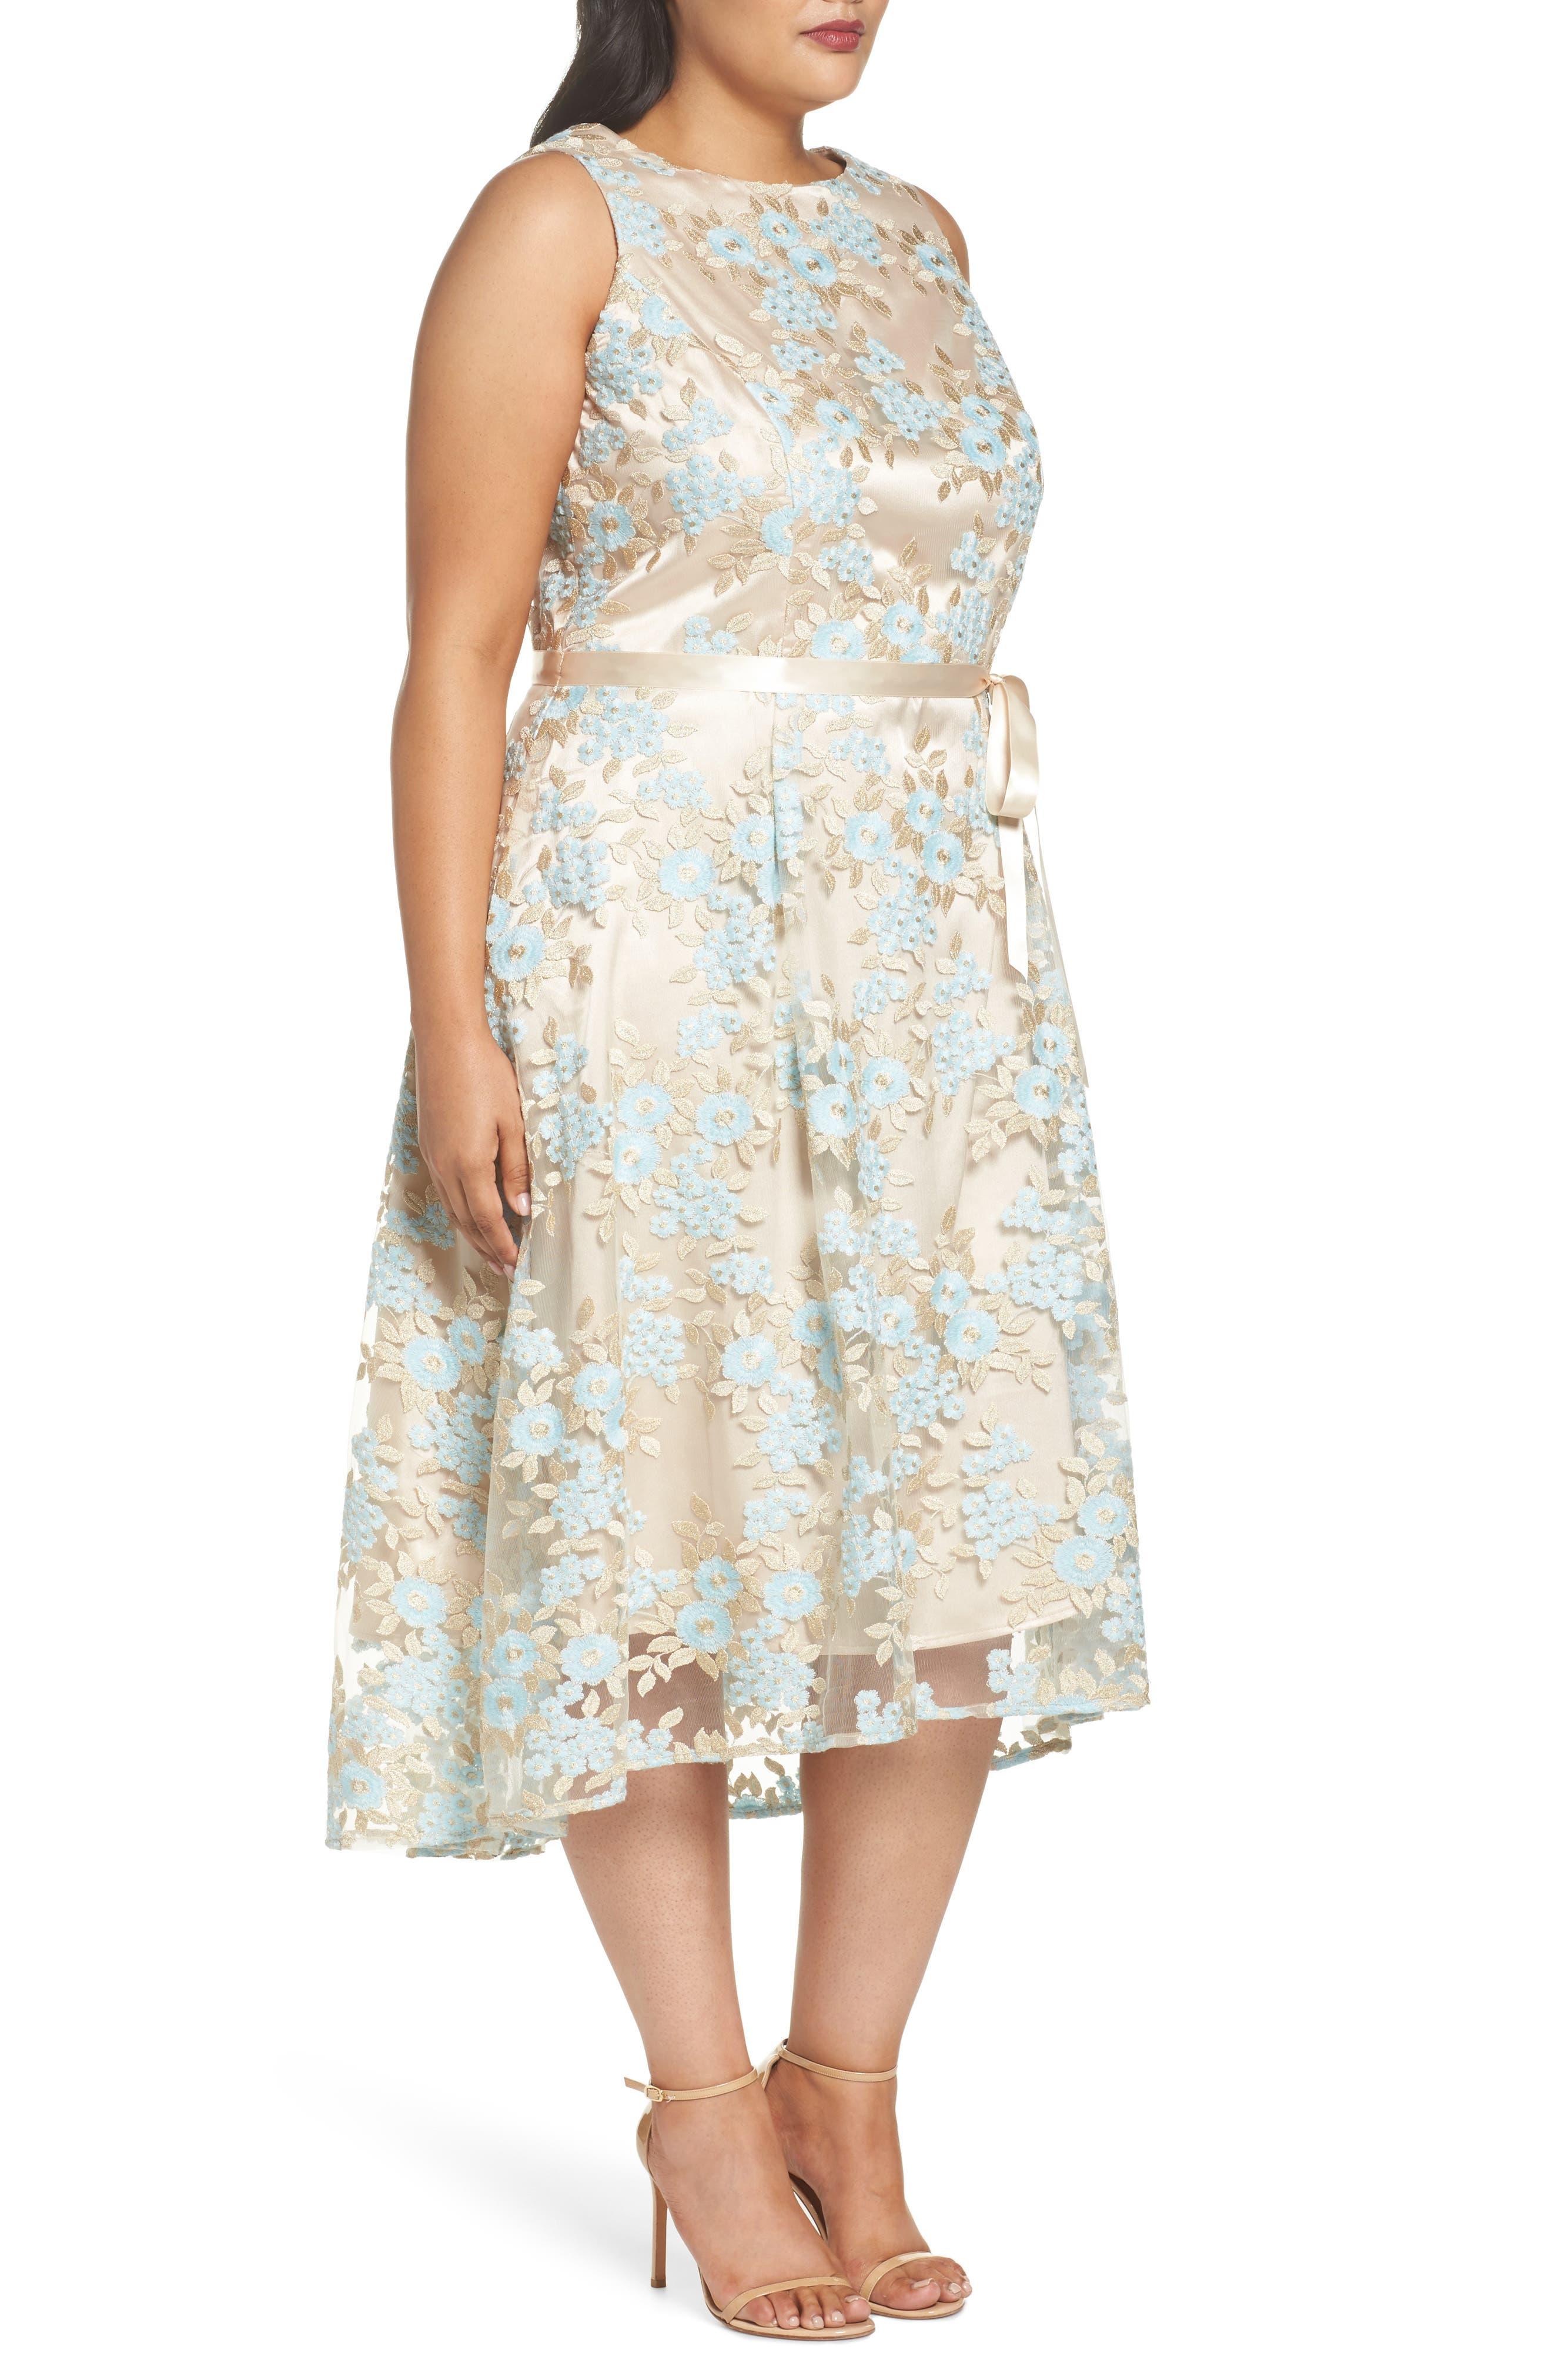 Lace Sleeveless Dress,                             Alternate thumbnail 3, color,                             Nude/ Ice Blue/ Gold